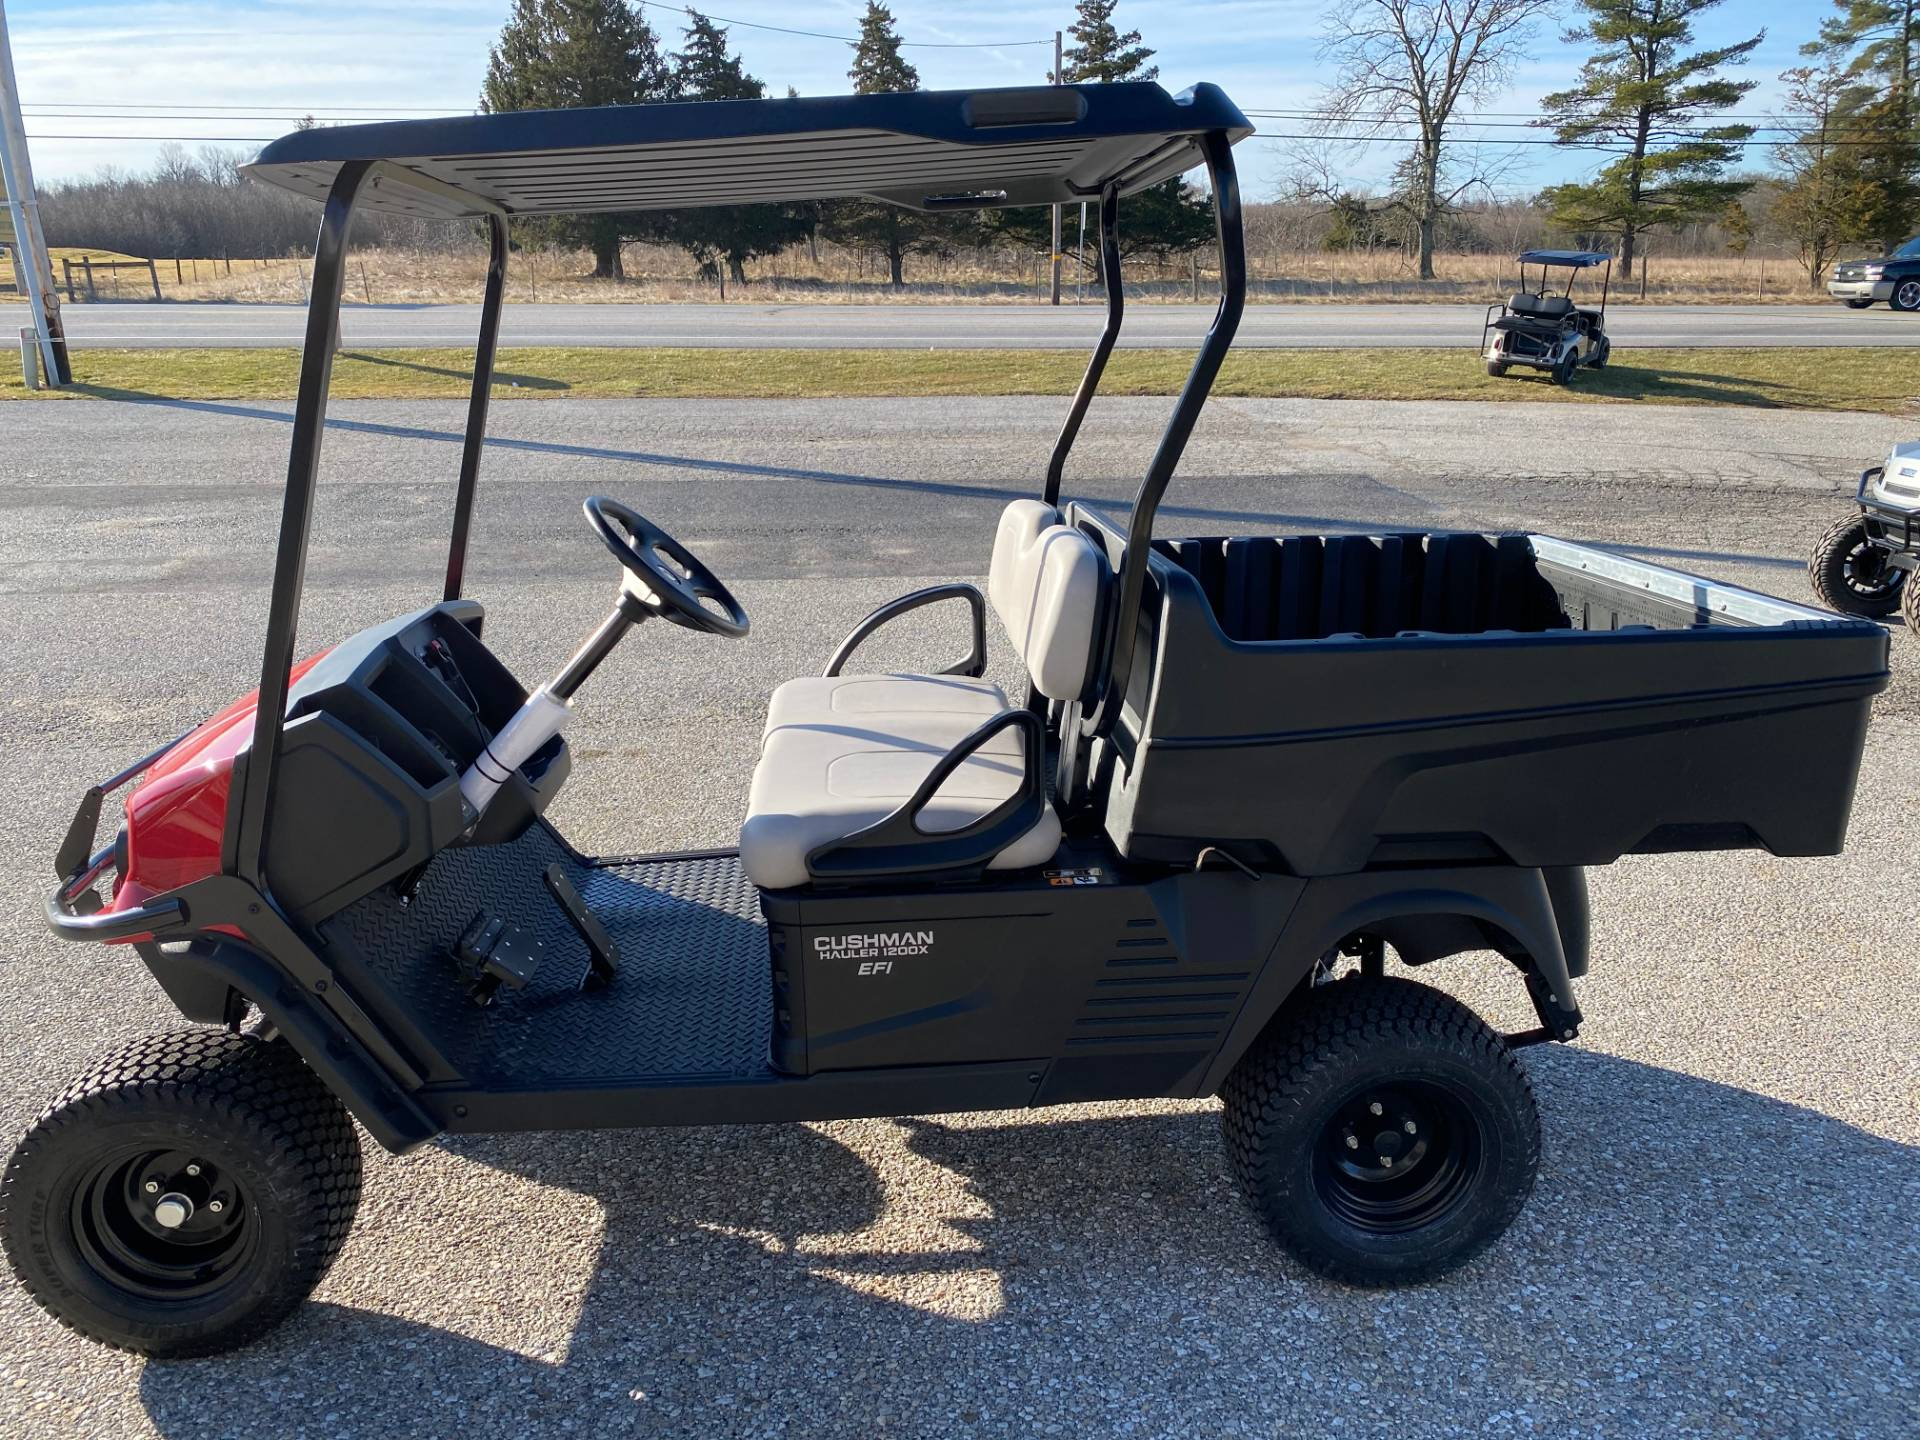 2020 Cushman HAULER 1200X EFI in New Oxford, Pennsylvania - Photo 2